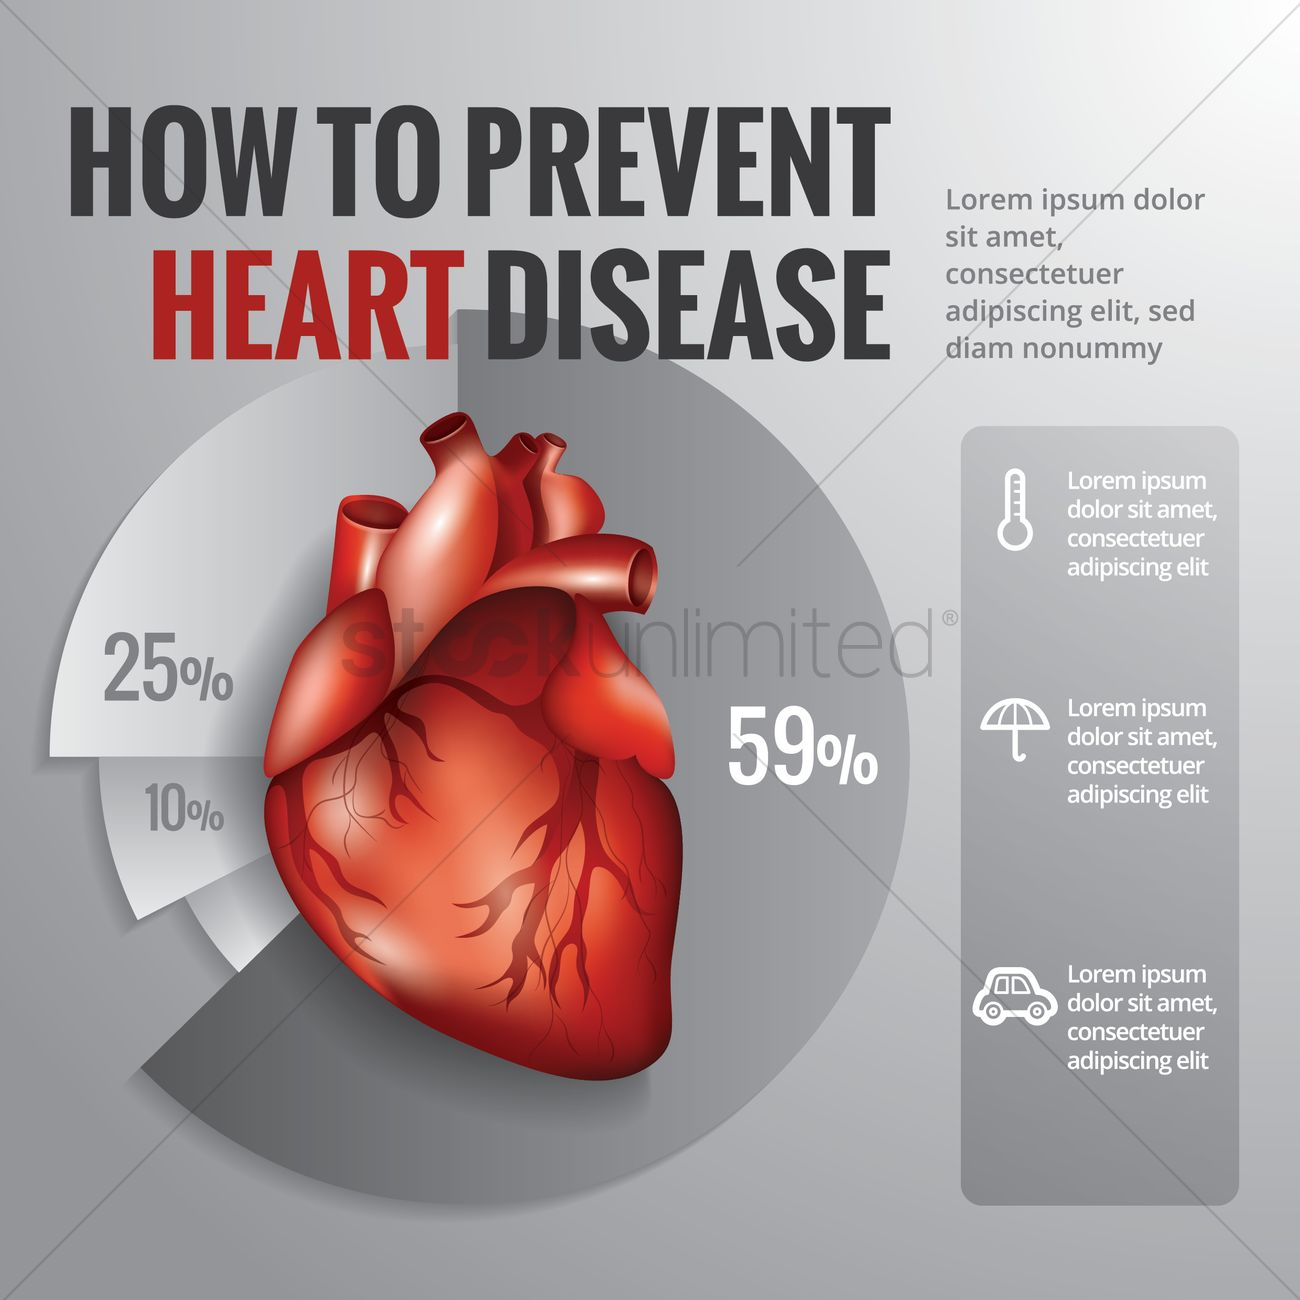 How To Prevent Heart Disease Diagram Vector Image